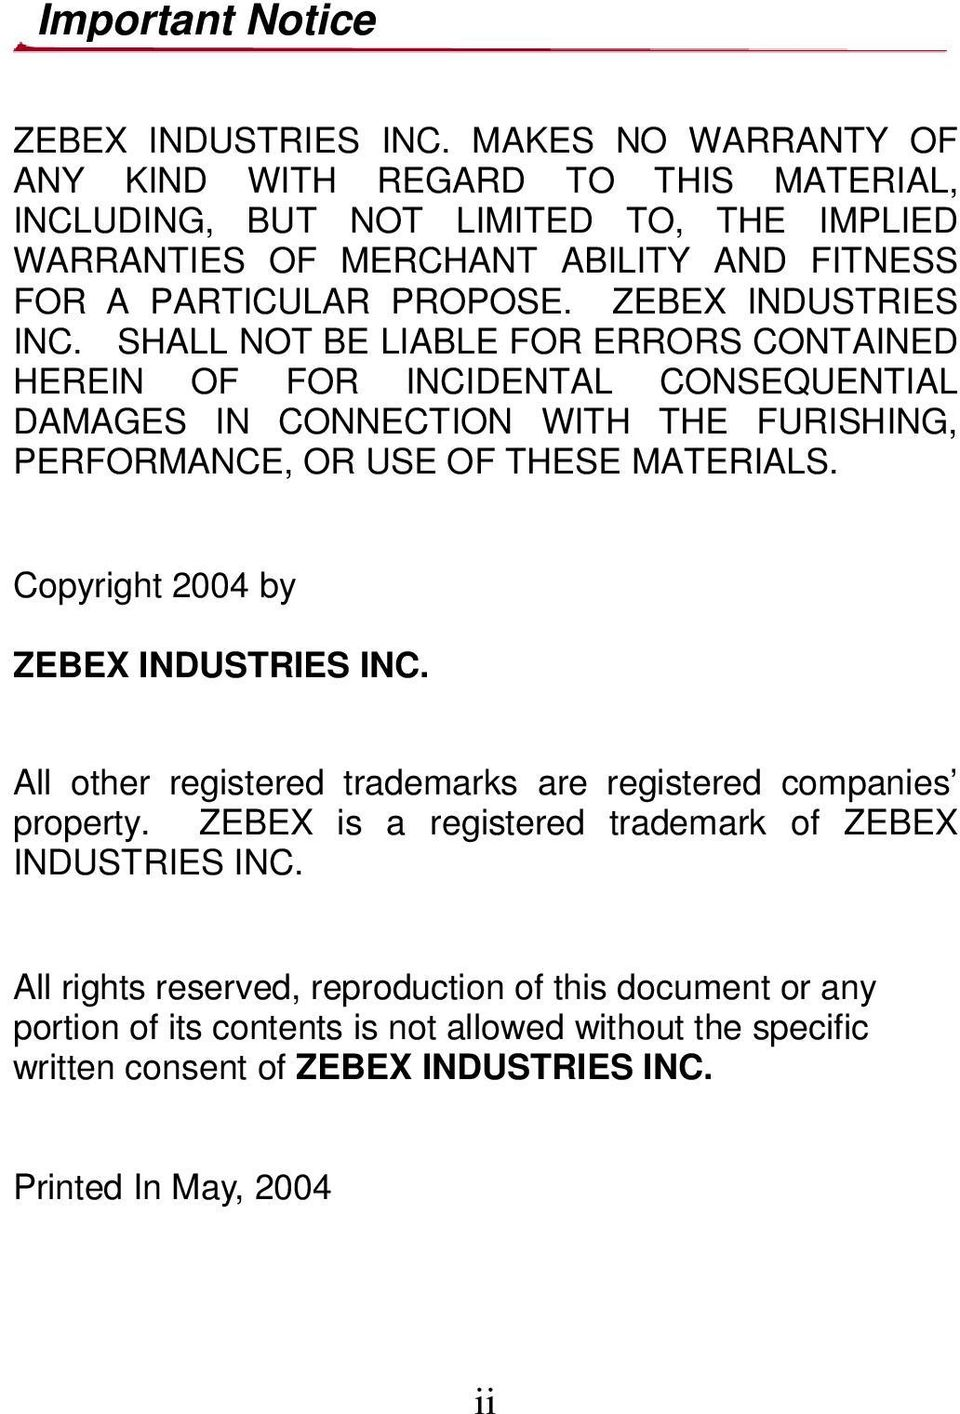 ZEBEX INDUSTRIES INC. SHALL NOT BE LIABLE FOR ERRORS CONTAINED HEREIN OF FOR INCIDENTAL CONSEQUENTIAL DAMAGES IN CONNECTION WITH THE FURISHING, PERFORMANCE, OR USE OF THESE MATERIALS.